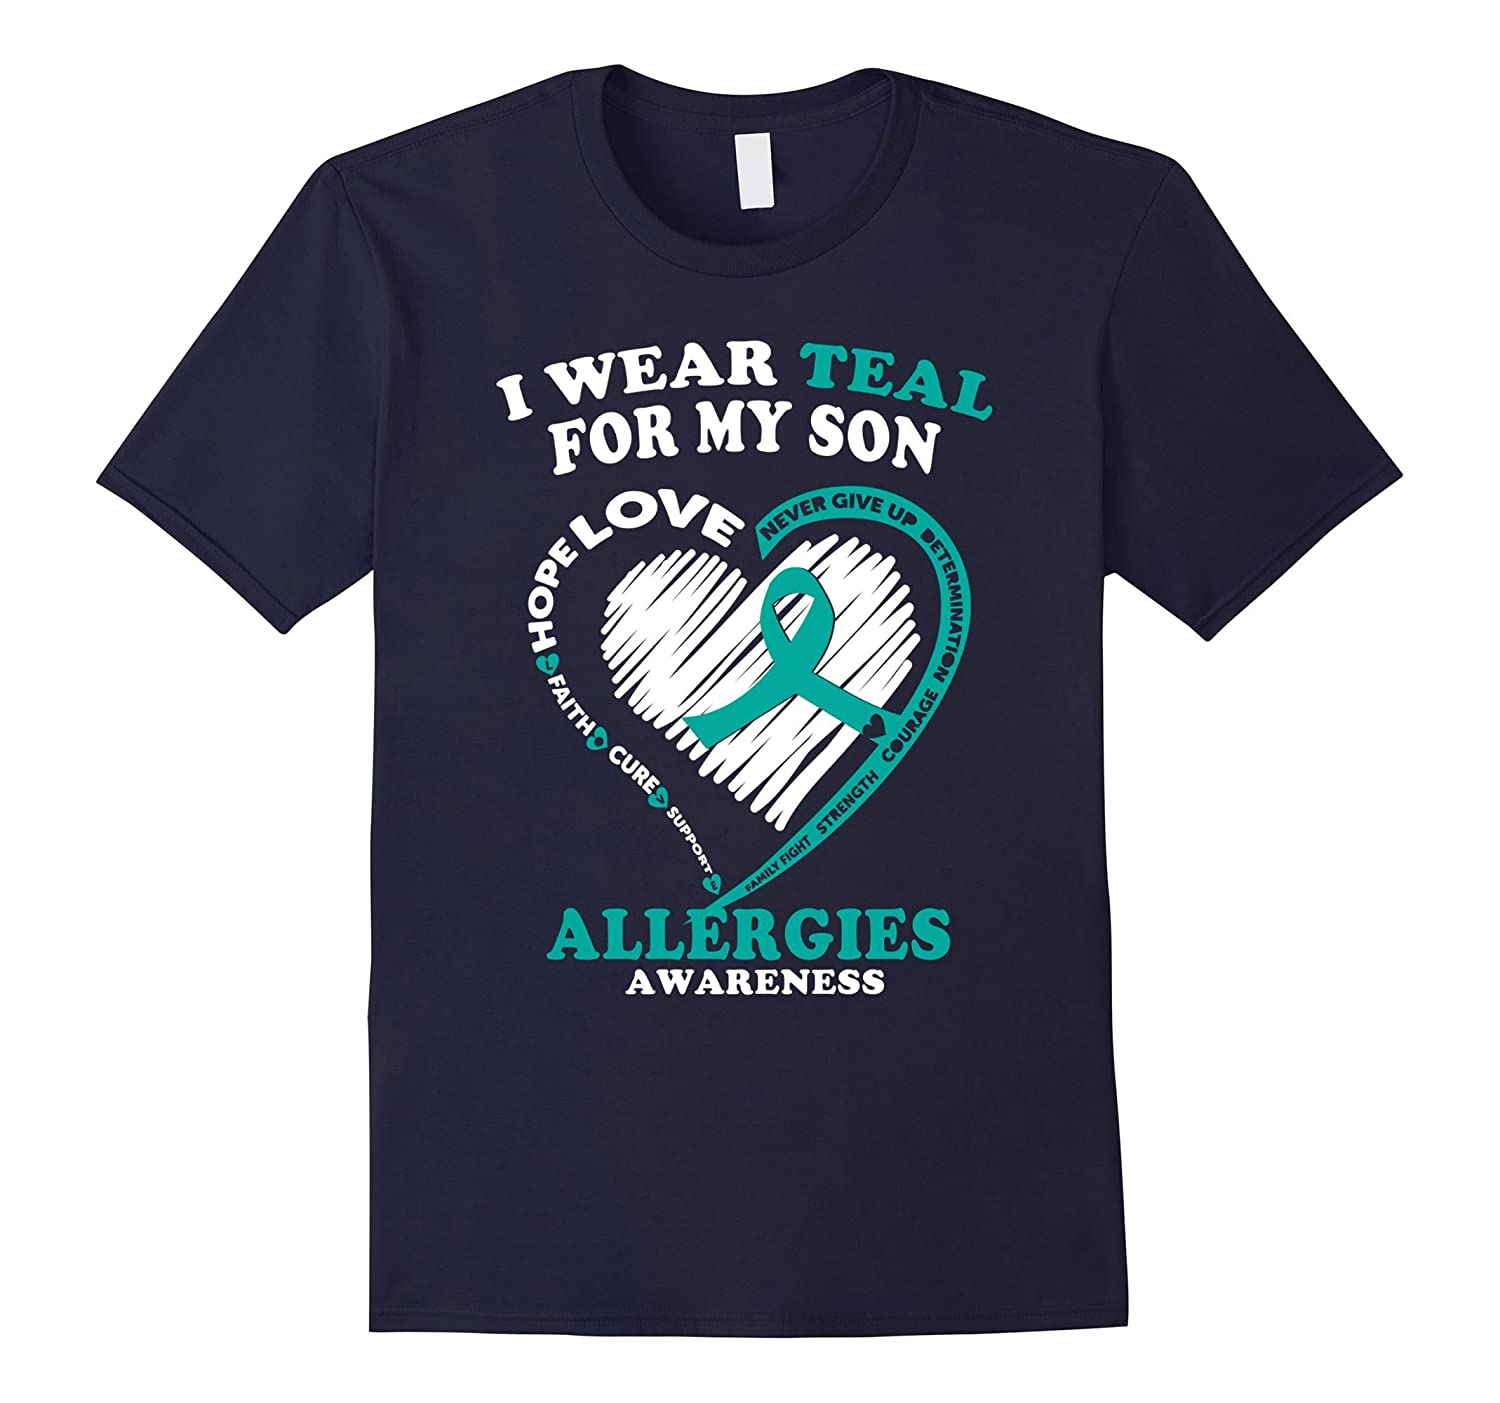 Allergies Awareness T Shirt - I Wear Teal For My Son-Vaci